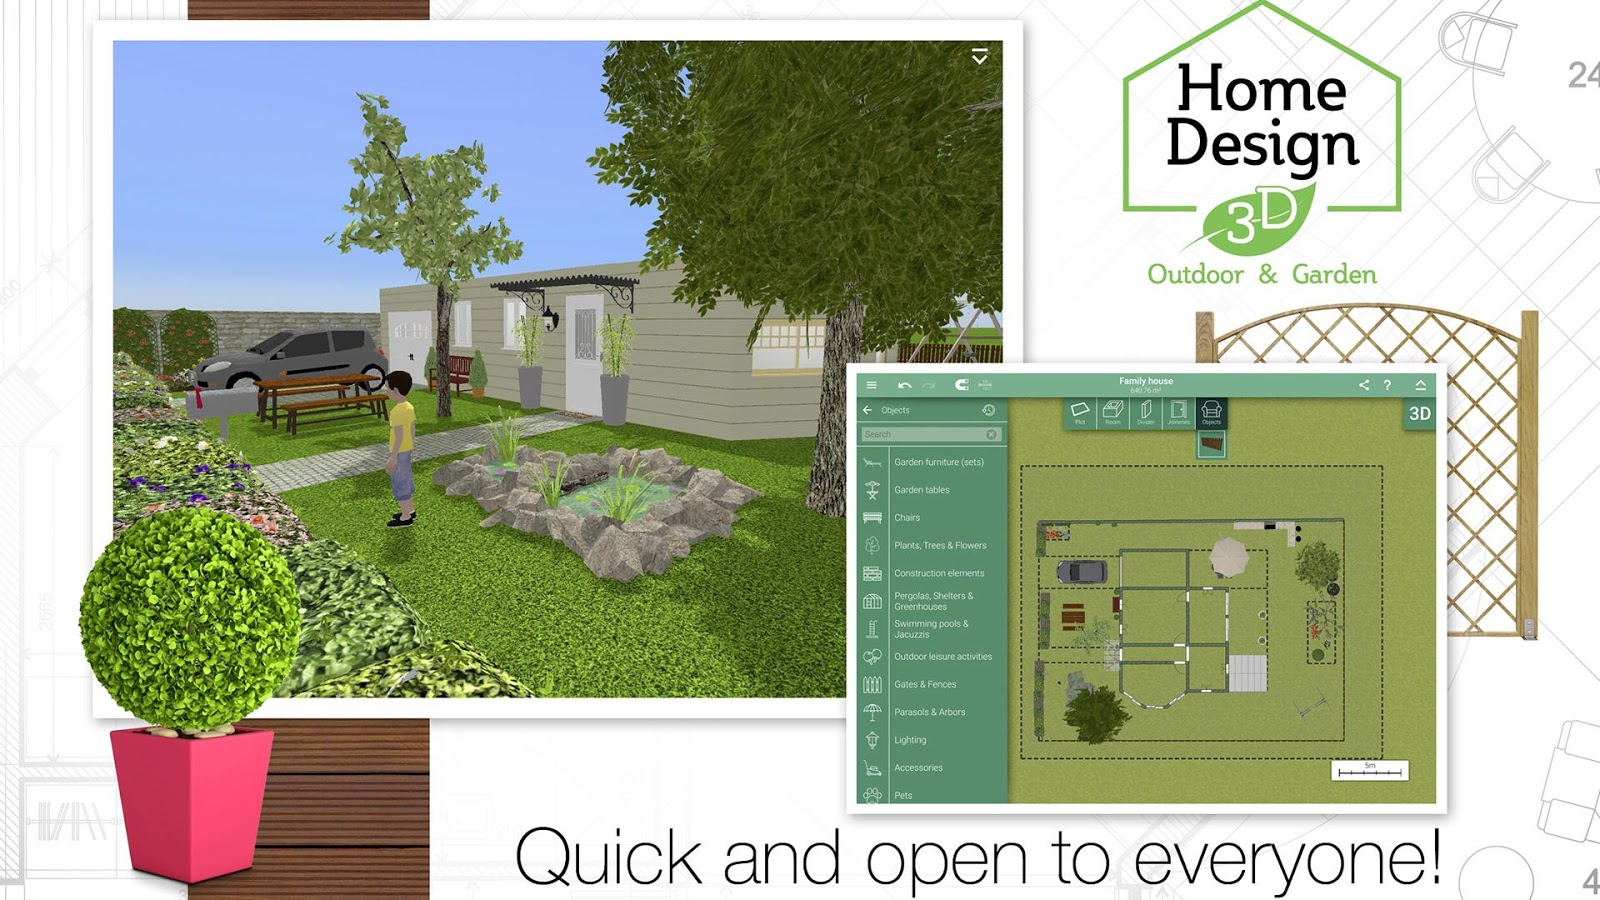 home design 3d outdoorgarden screenshot